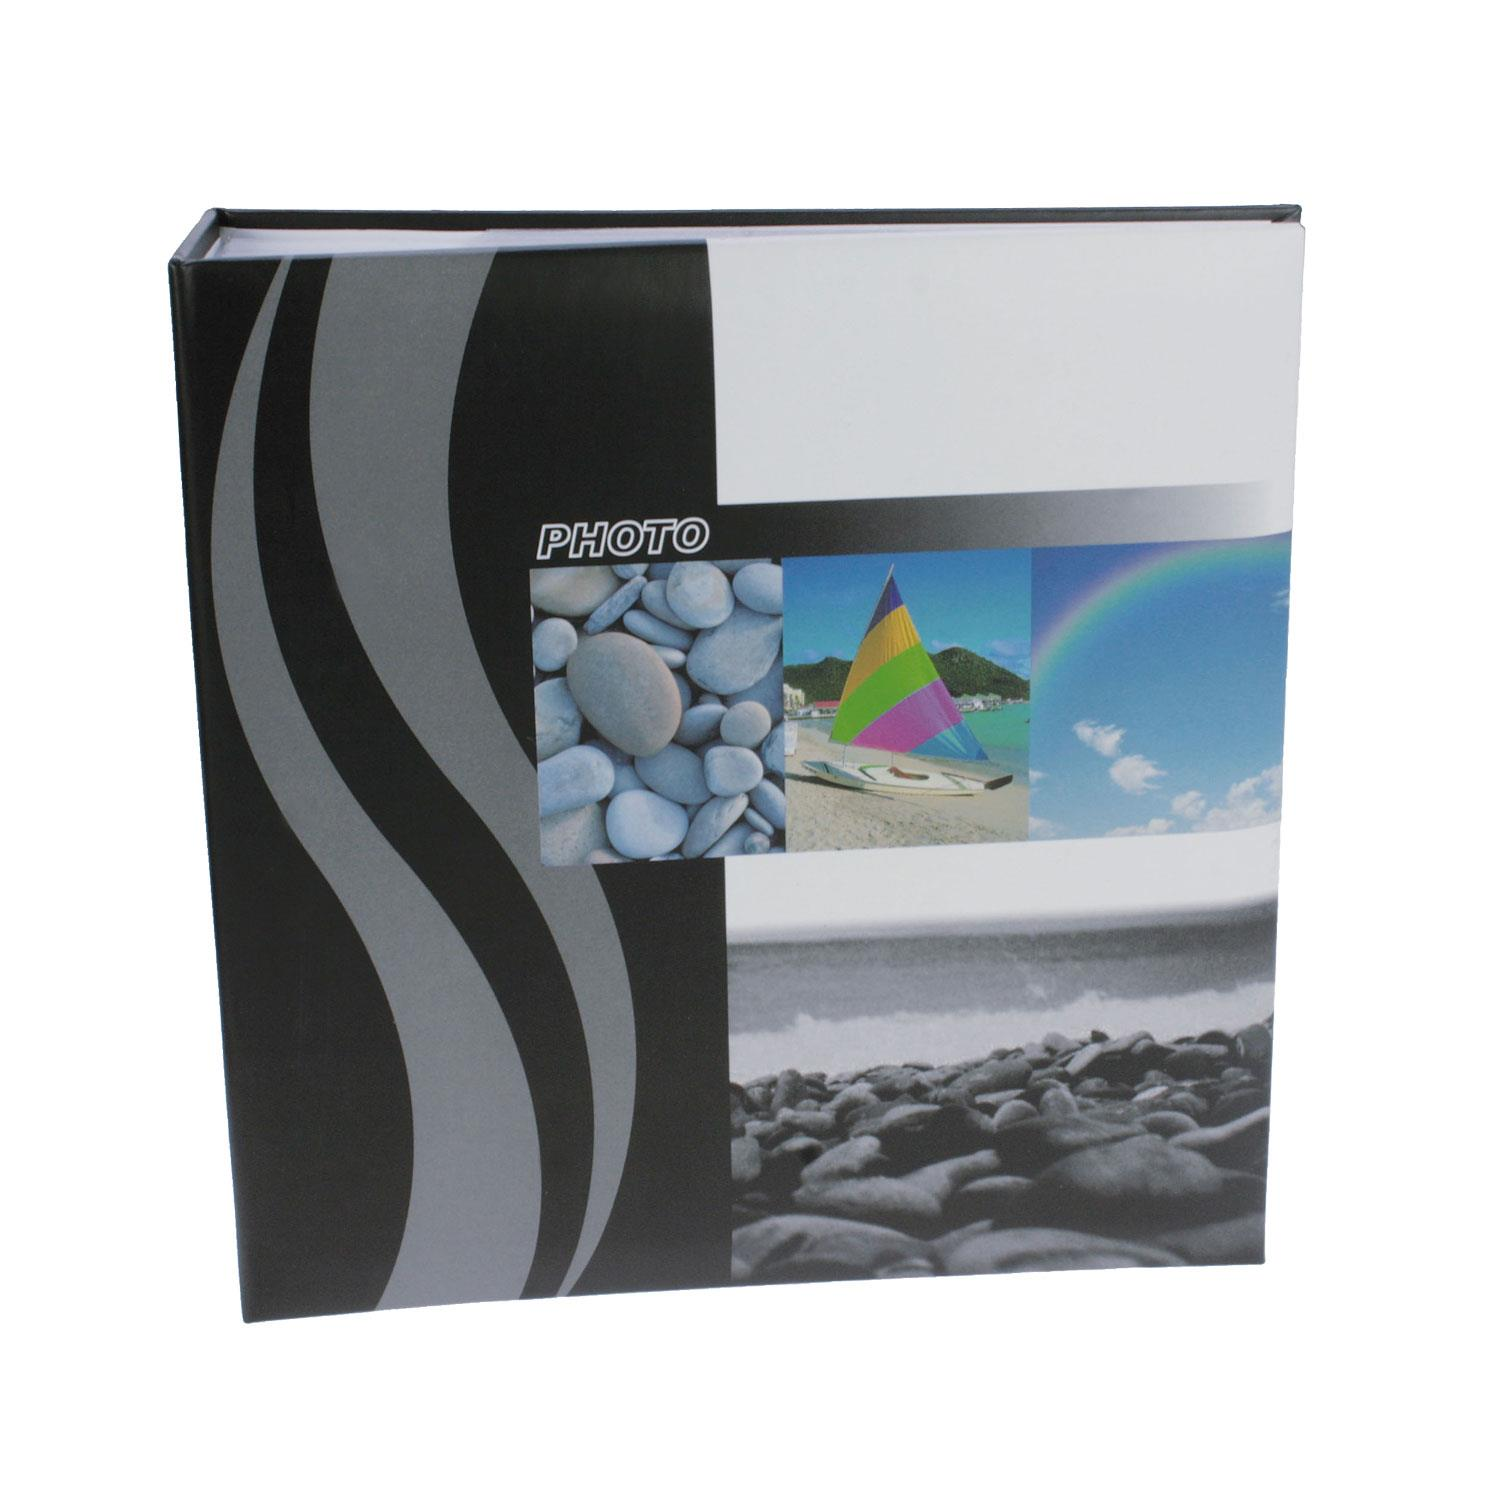 Dorr Wave Beach 6x4 Slip In Photo Album - 200 Photos